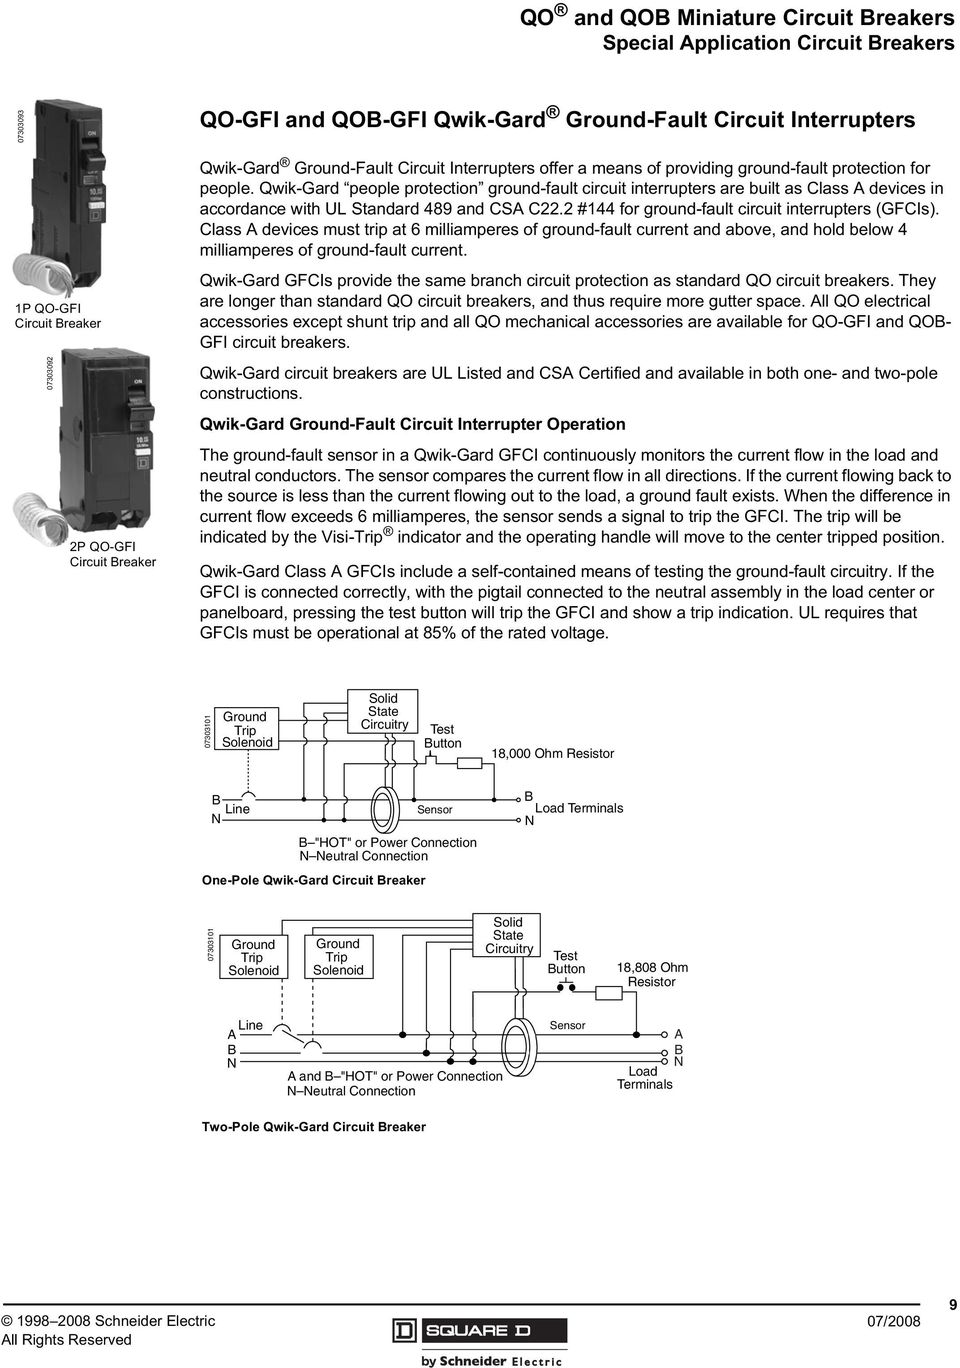 Qo And Qob Miniature Circuit Breakers Pdf Square D Qwikgard 15 Amp Singlepole Gfci Breaker Qwik Gard People Protection Ground Fault Interrupters Are Built As Class A Devices